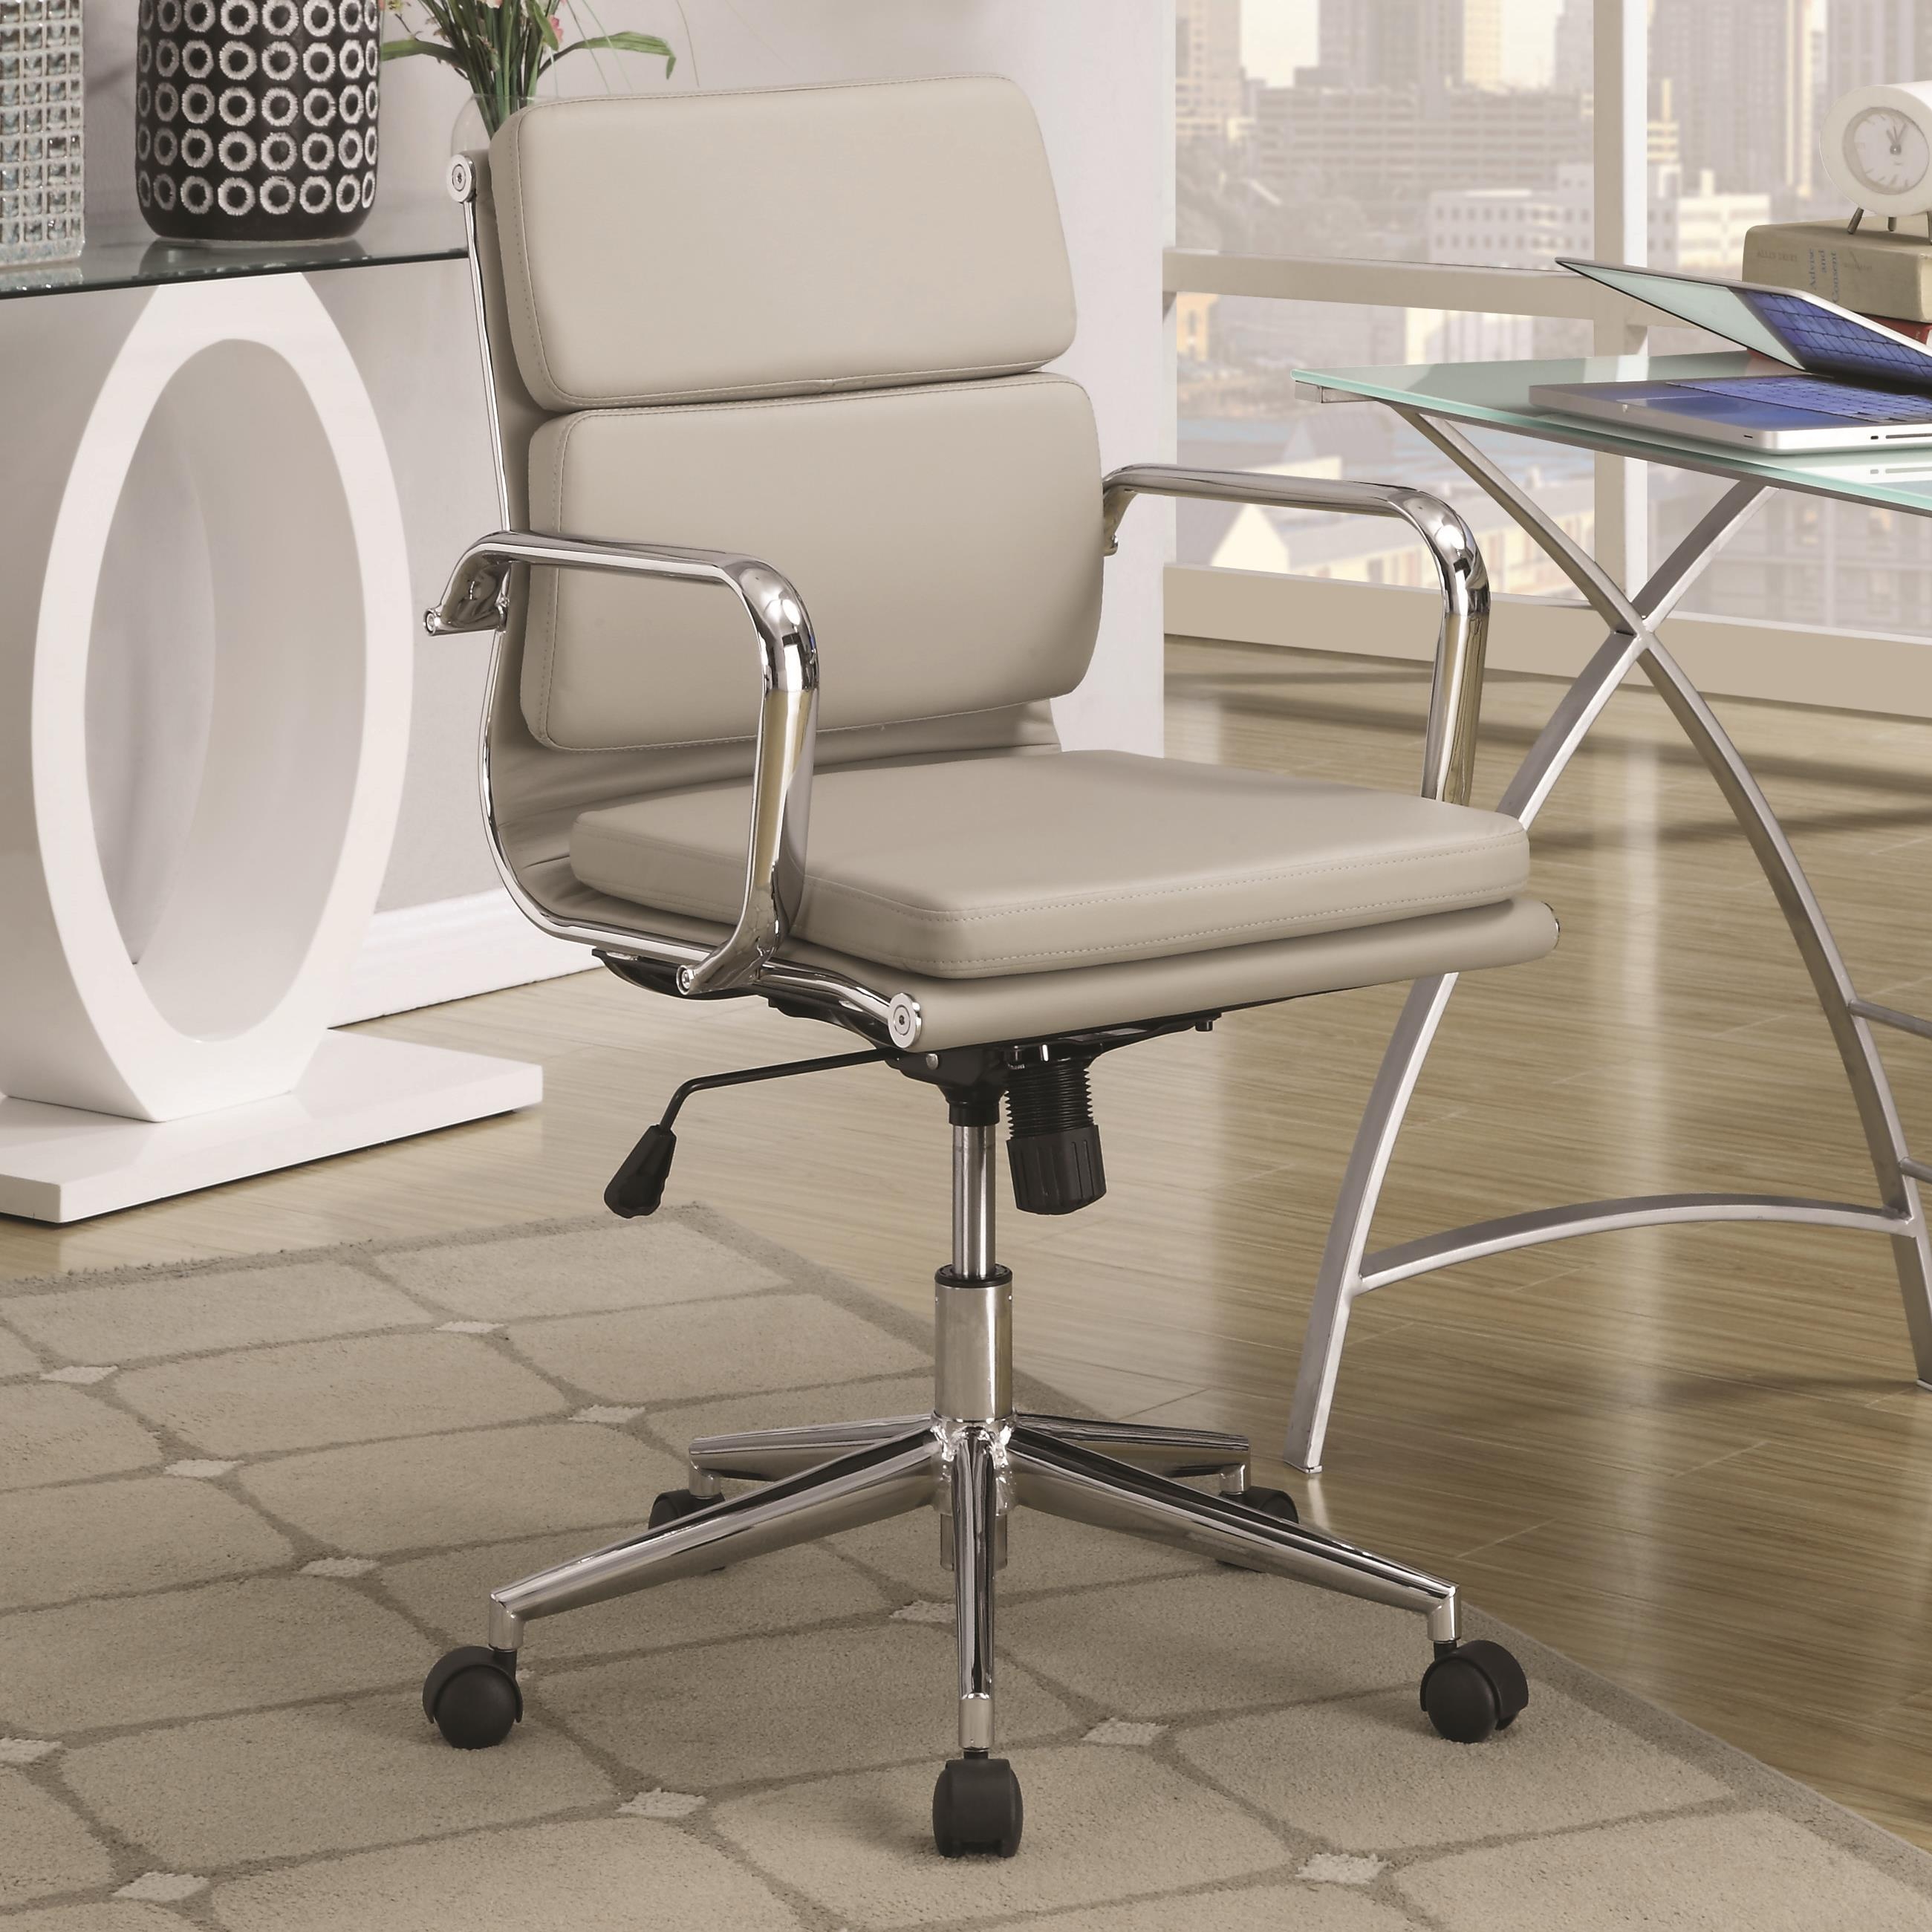 products_coaster_color_office chairs_800828-b0